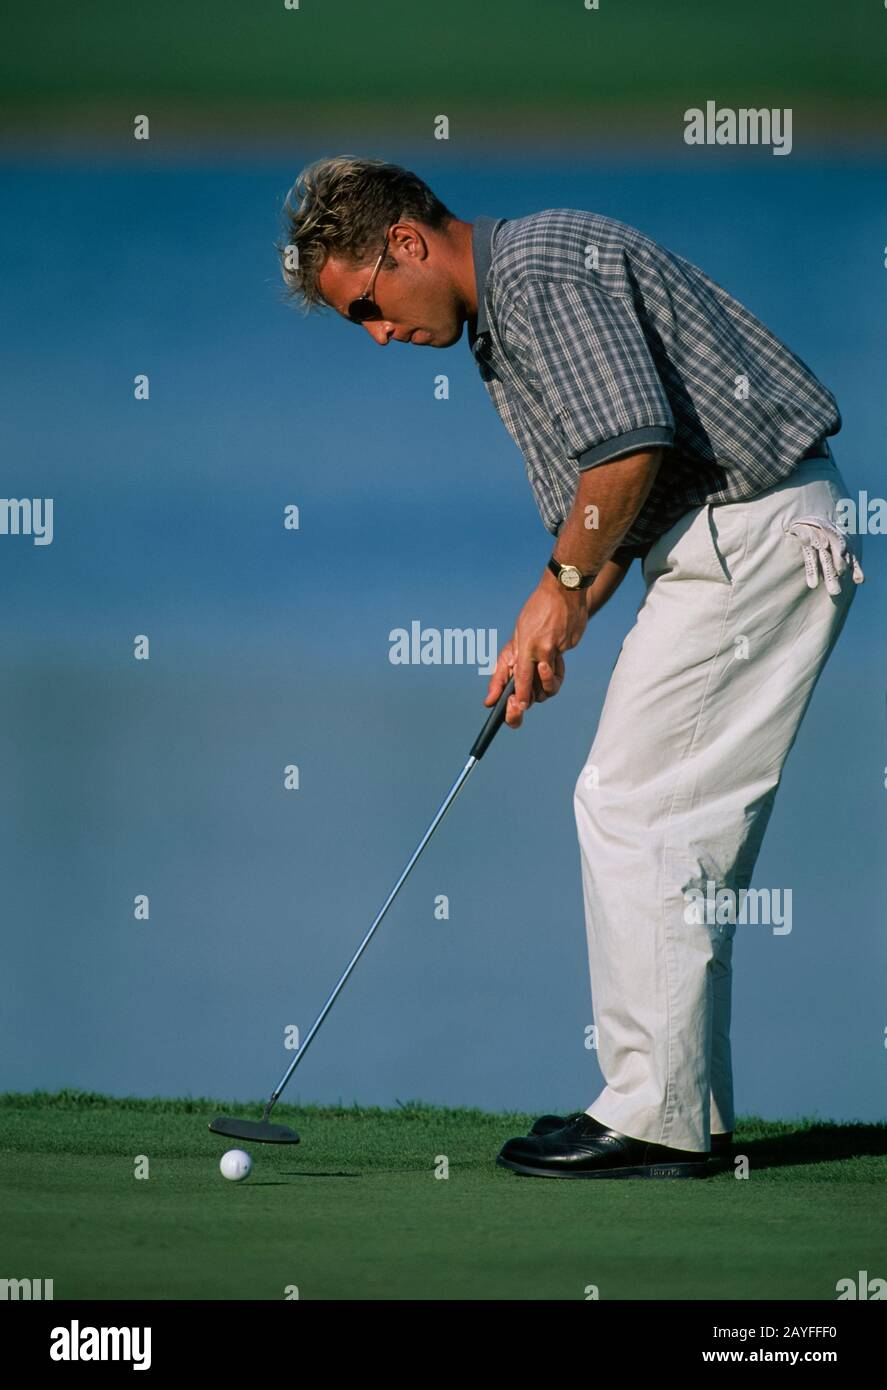 Per Ulrik Johansson of Sweden putting for birdie on the 17th hole during the Dubai Desert Classic 1996, 19th-22nd January - Emirates Golf Club, Dubai, Stock Photo